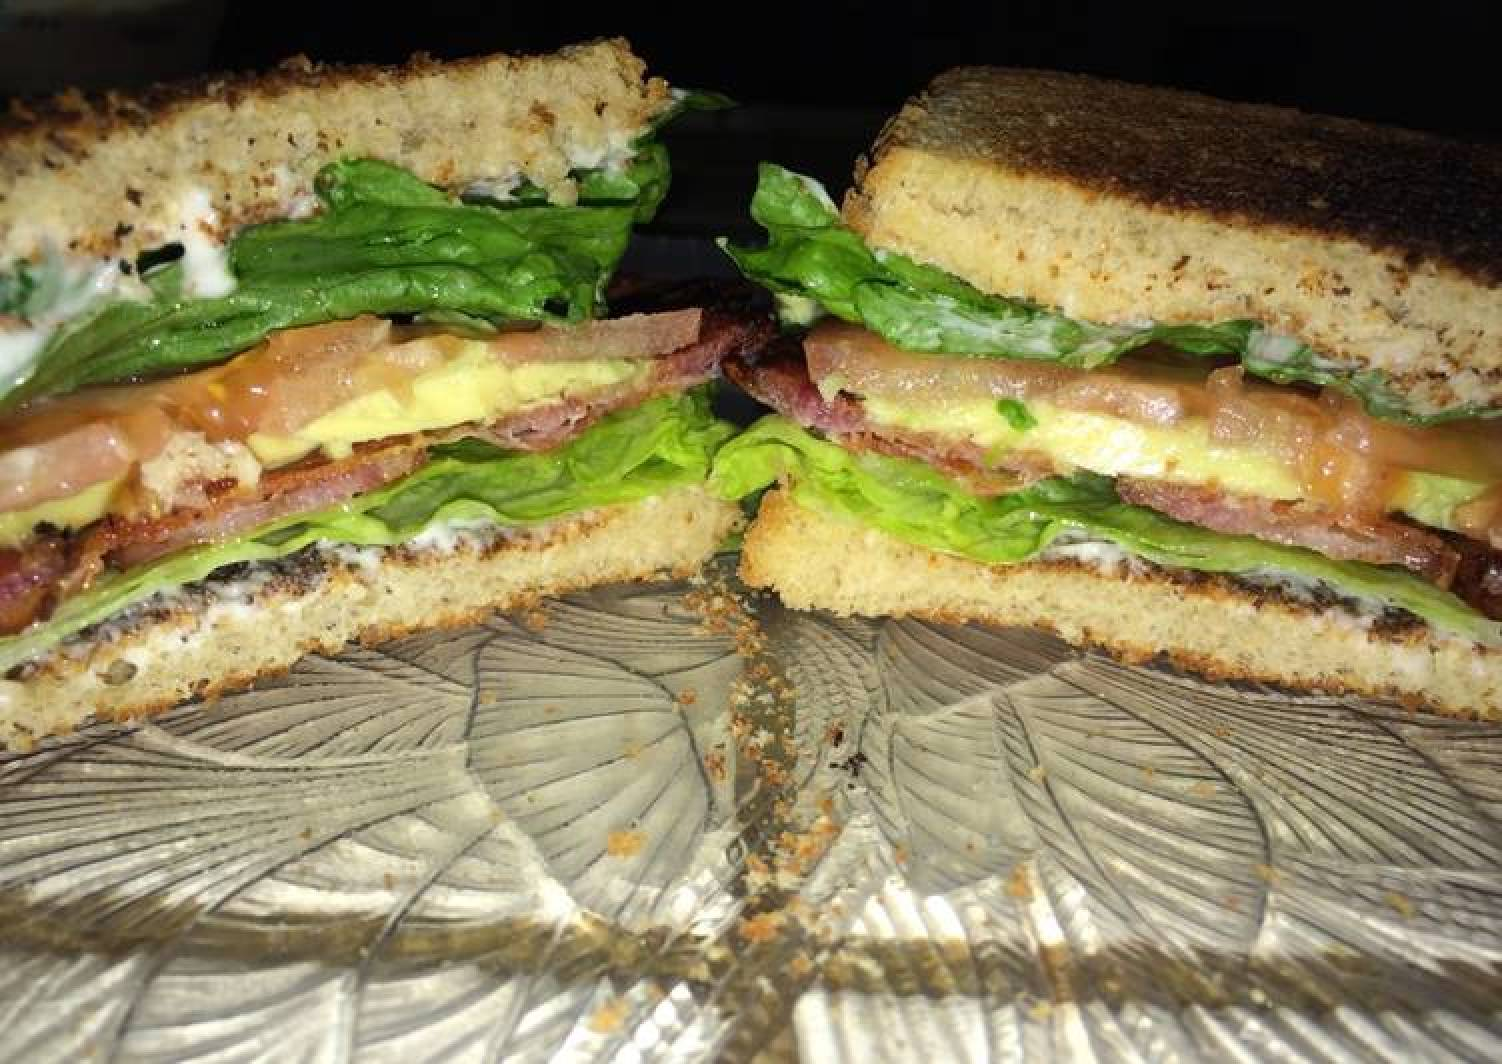 B.A.L.T.S. Bacon Avocado Lettuce Tomato Sandwiches